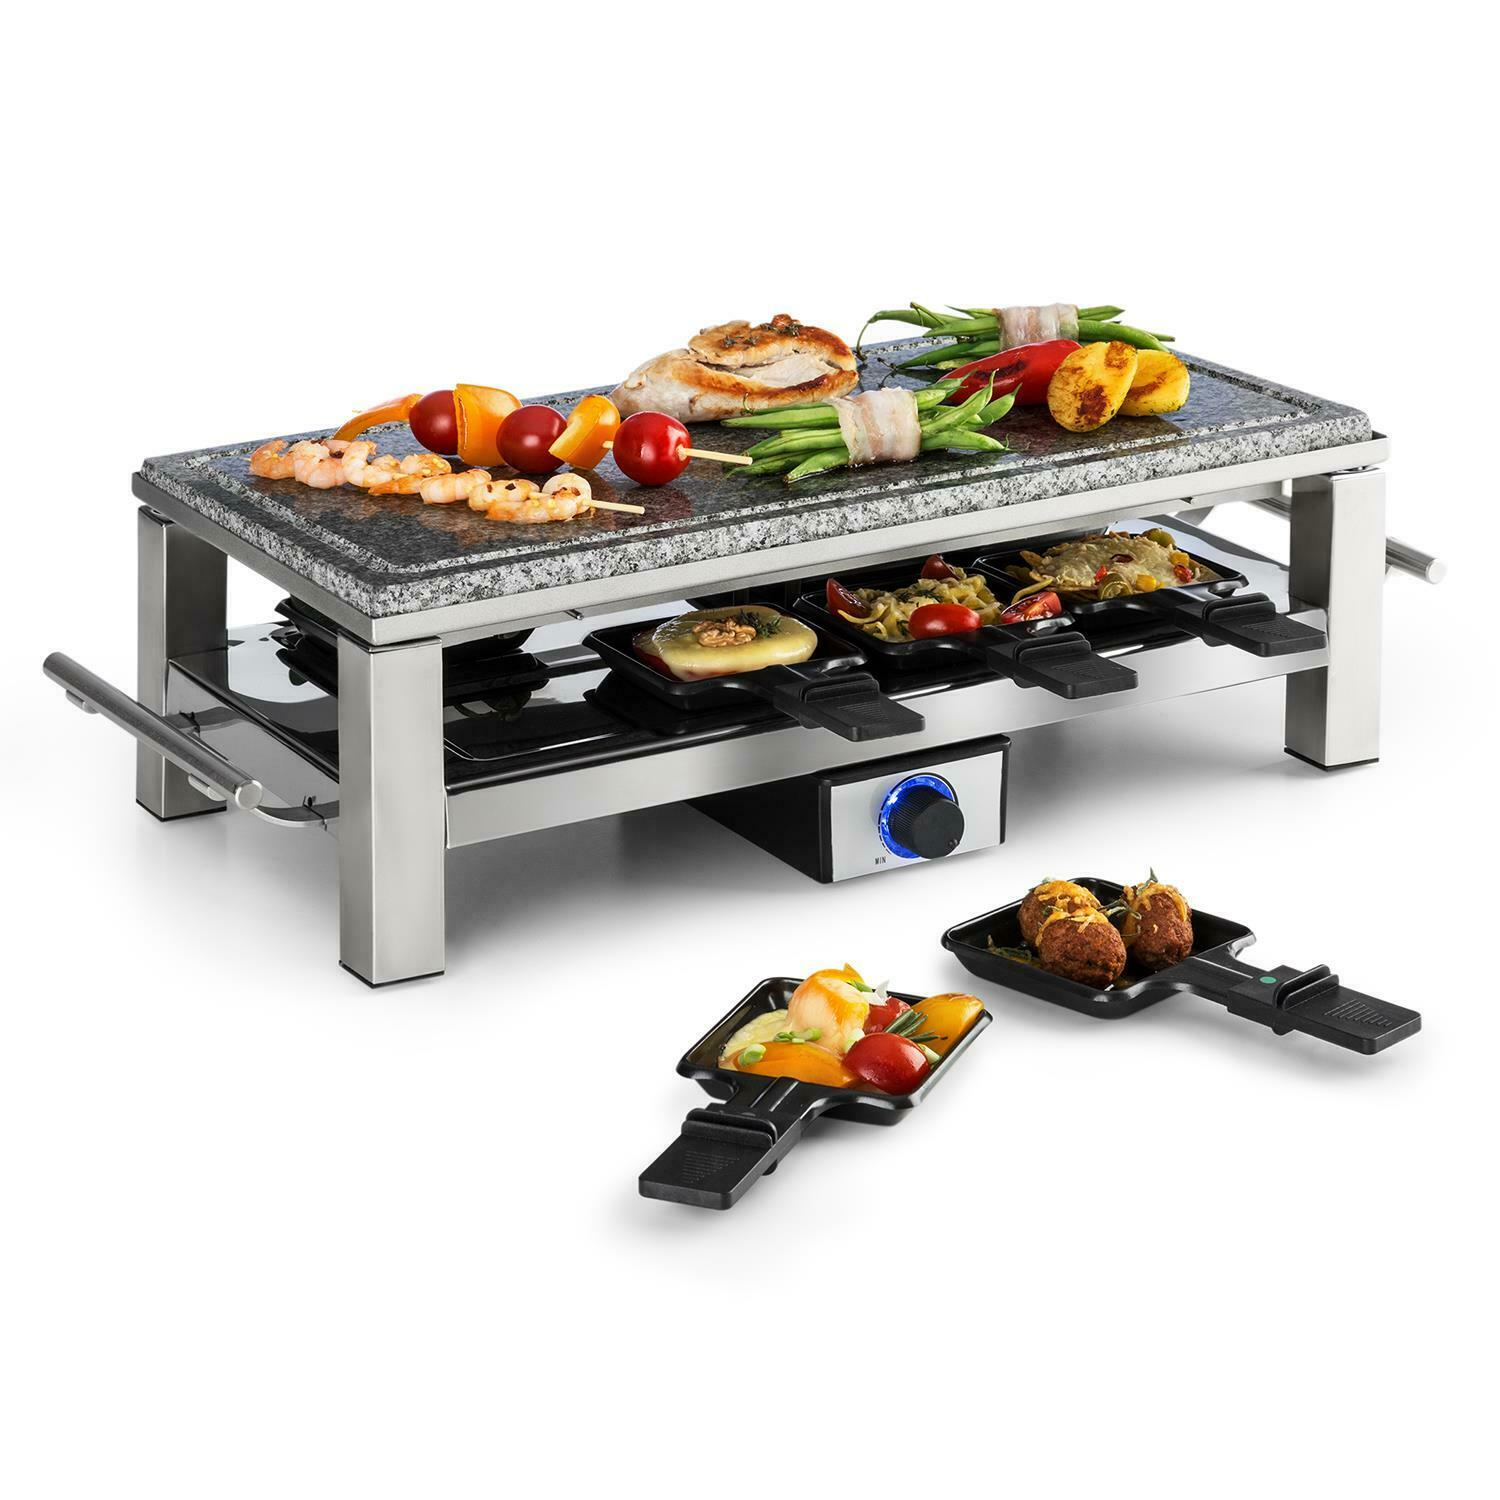 raclette tischgrill naturstein platte edelstahlgeh use elektrisch tragbar 1500w eur 49 99. Black Bedroom Furniture Sets. Home Design Ideas